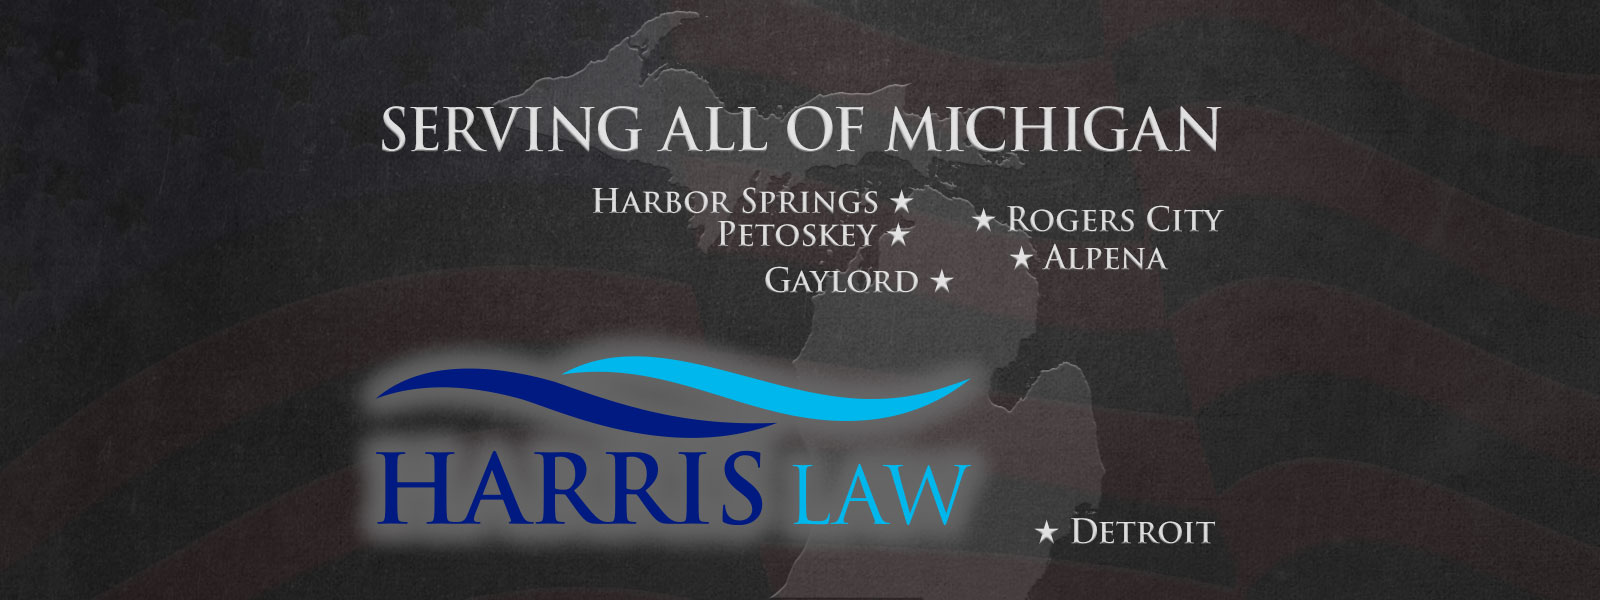 Harris Law with Offices in Petoskey, Gaylord, Harbor Springs, Rogers City, Alpena, and Detroit